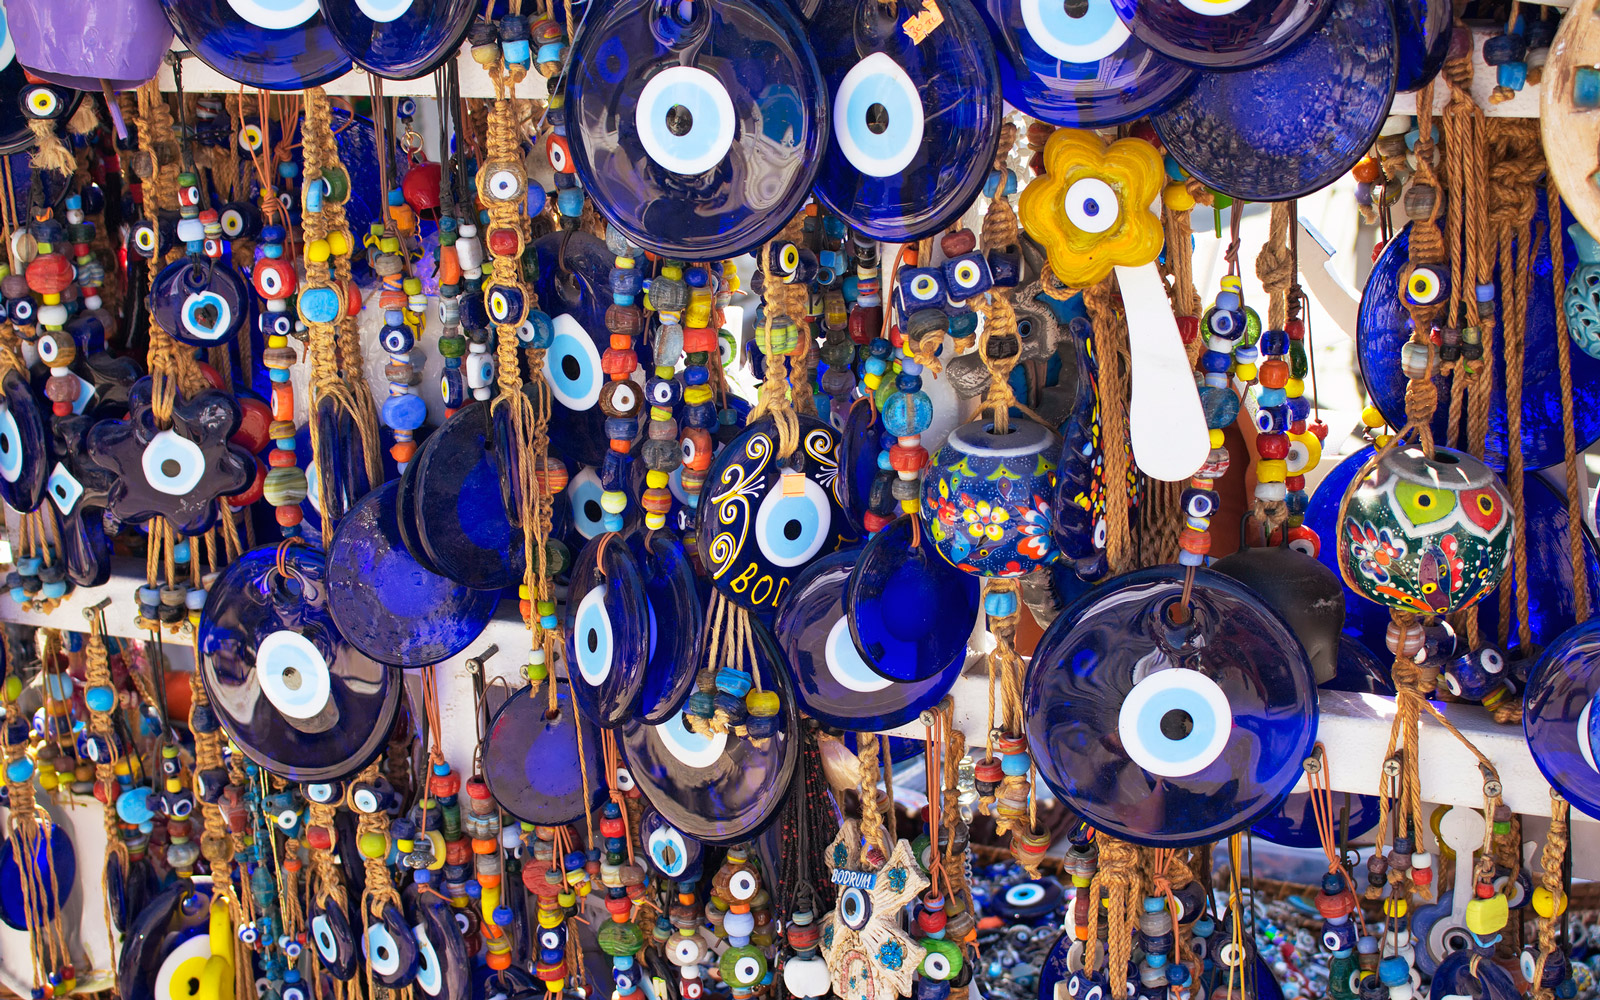 Close up view of evil eye souvenirs.